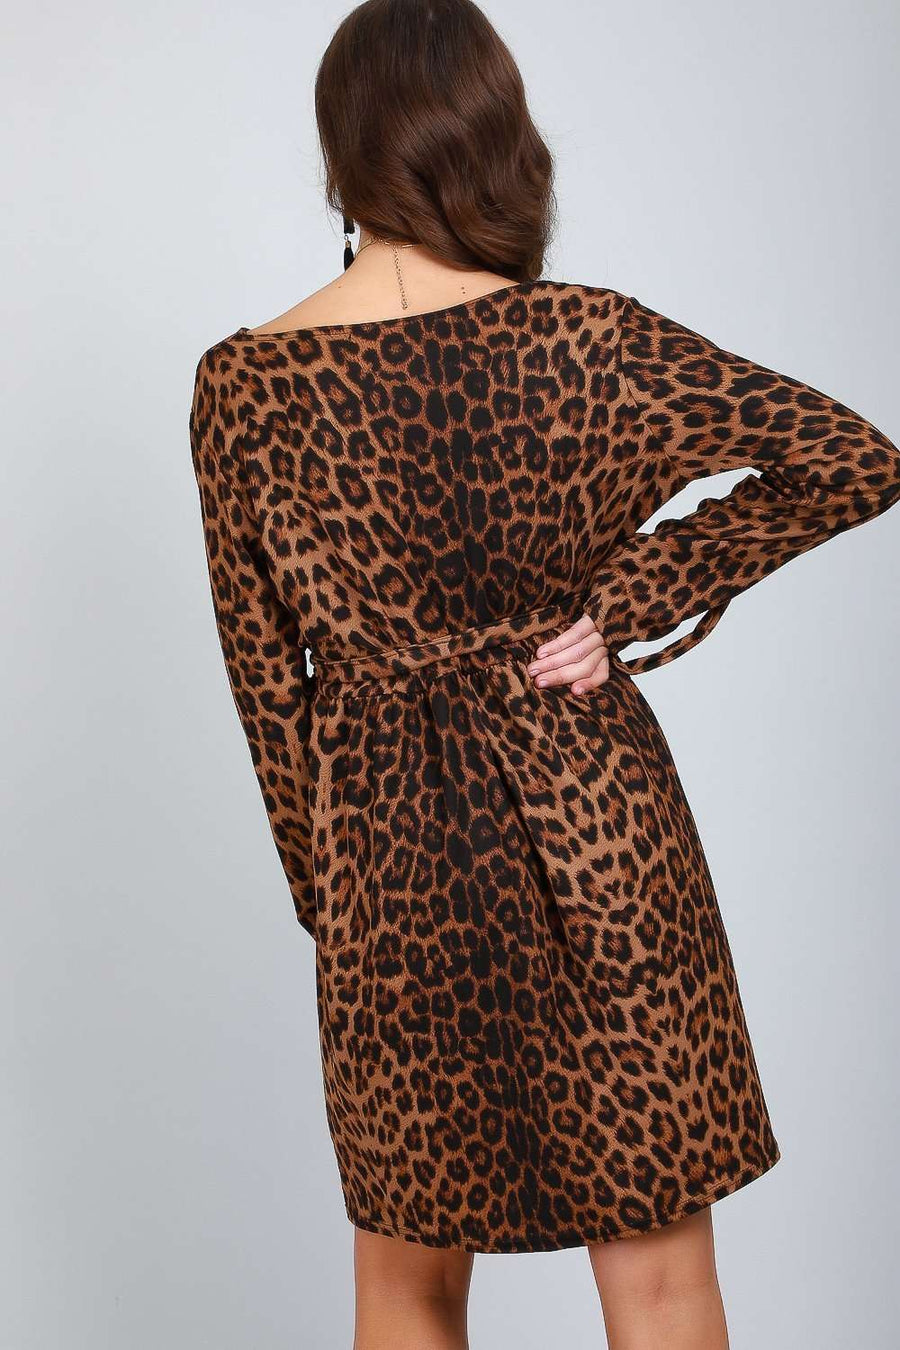 Jess Long Sleeve Leopard Print Shift Dress - bejealous-com